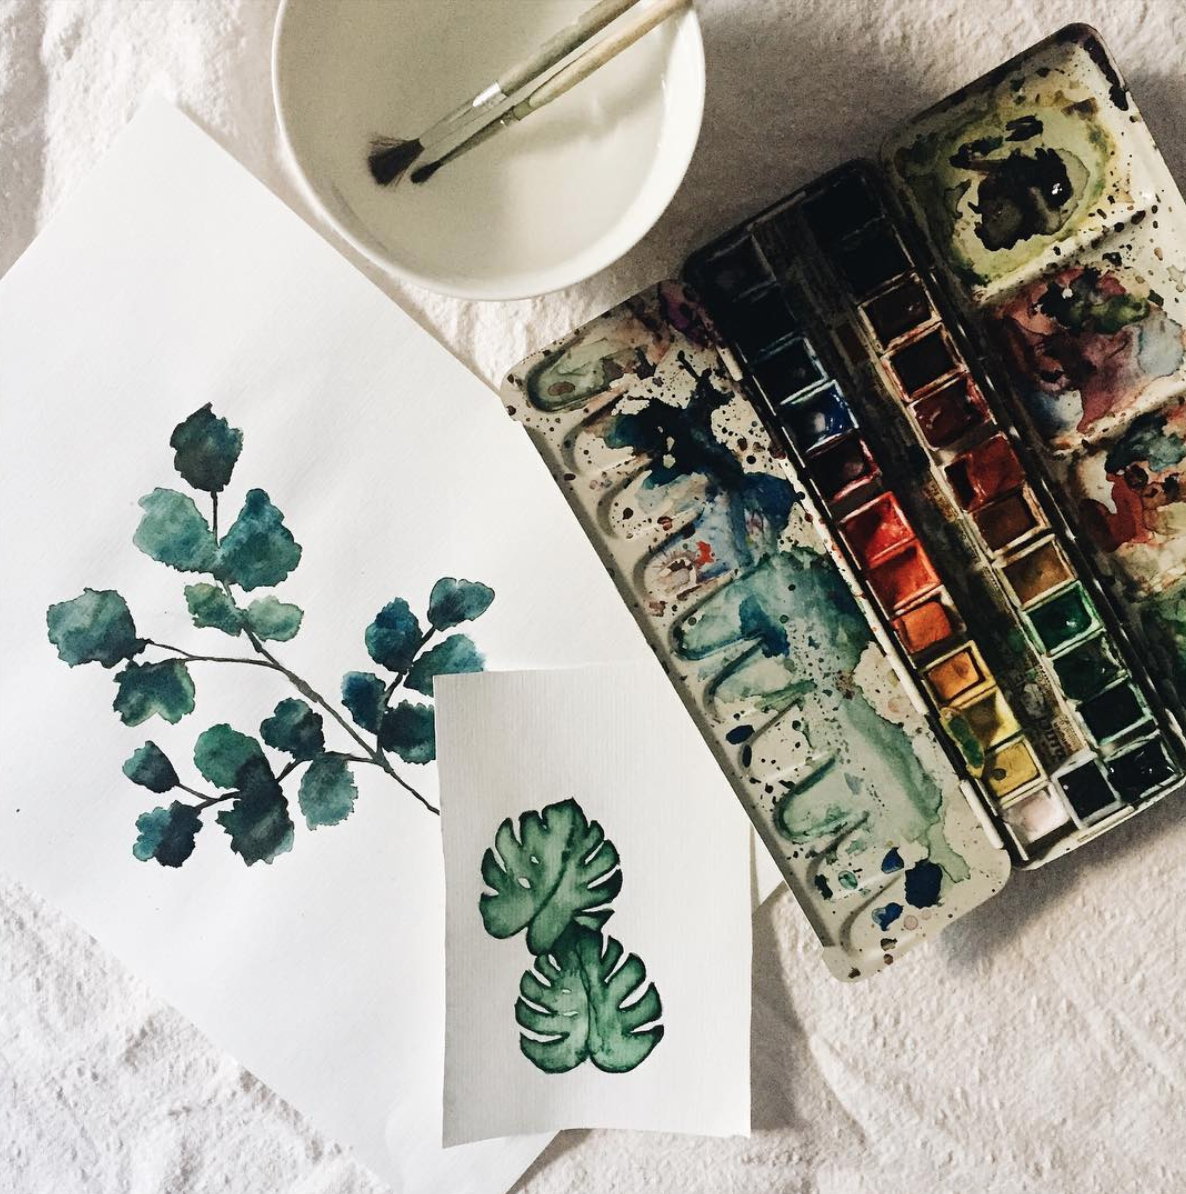 Aktuelles DIY Projekt #painting #watercolor #aquarelle #monstera #home #design #creative #diy #hamburg